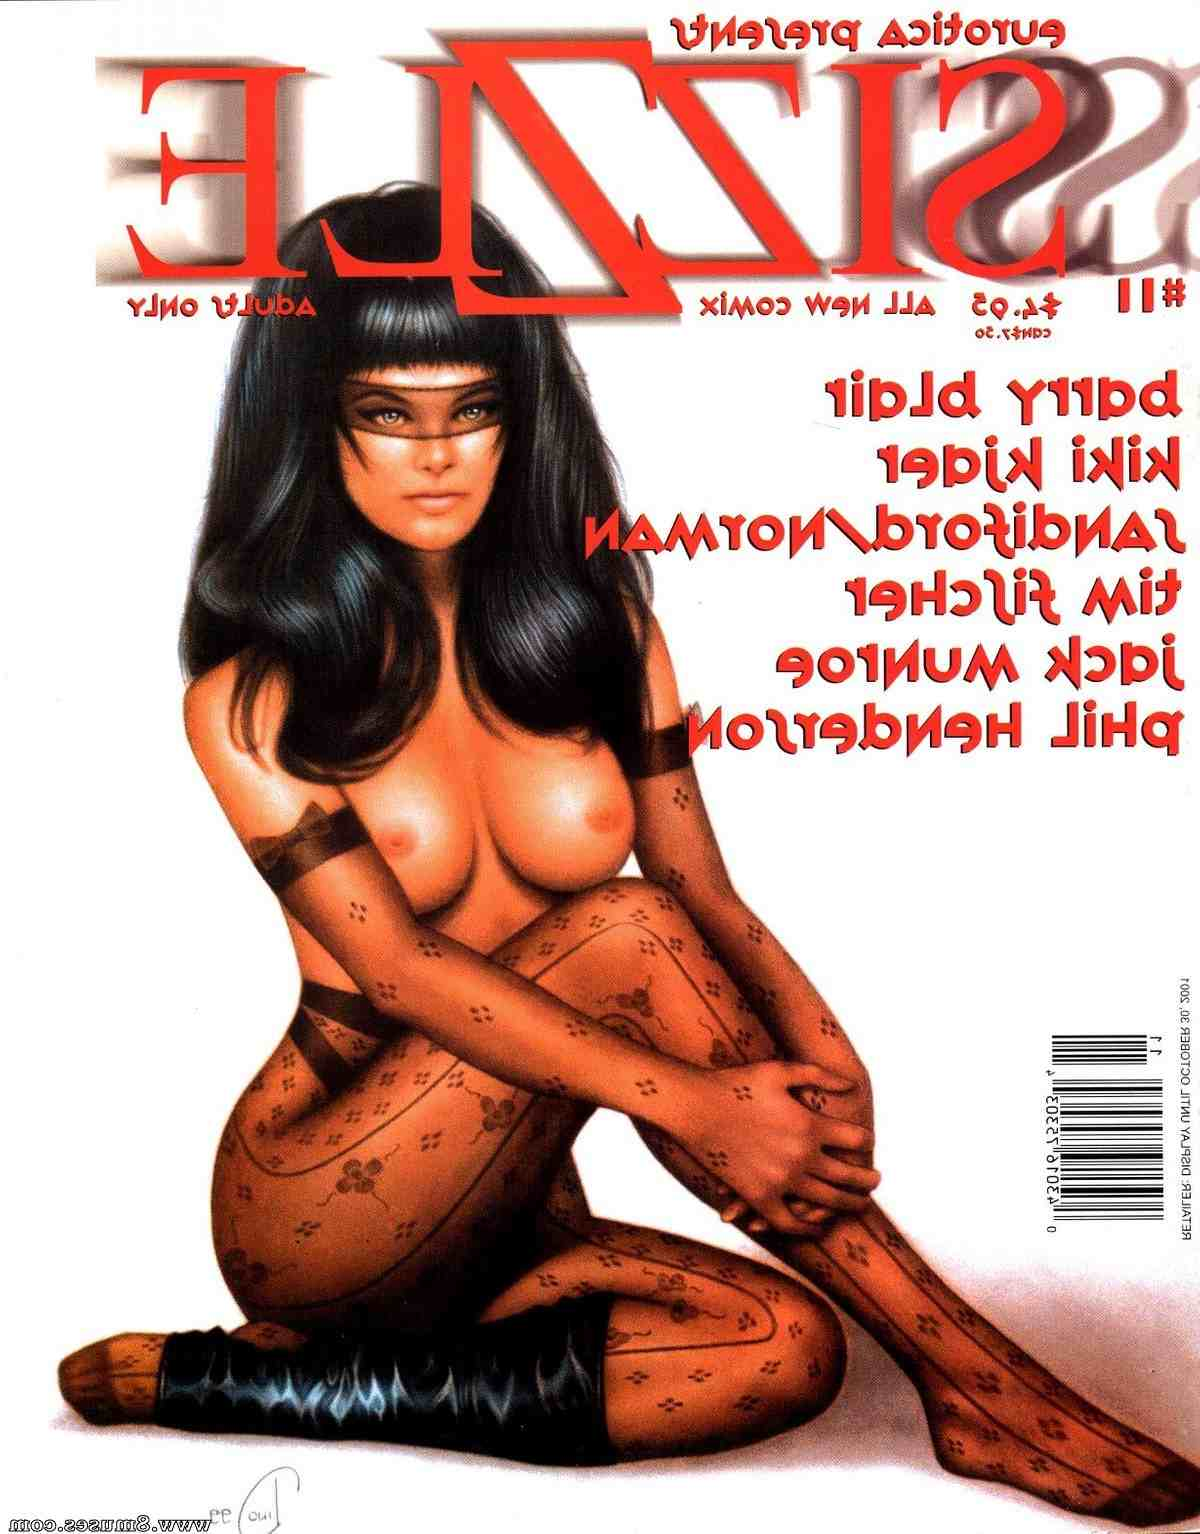 Eurotica-Comics/Sizzle Sizzle__8muses_-_Sex_and_Porn_Comics_8.jpg